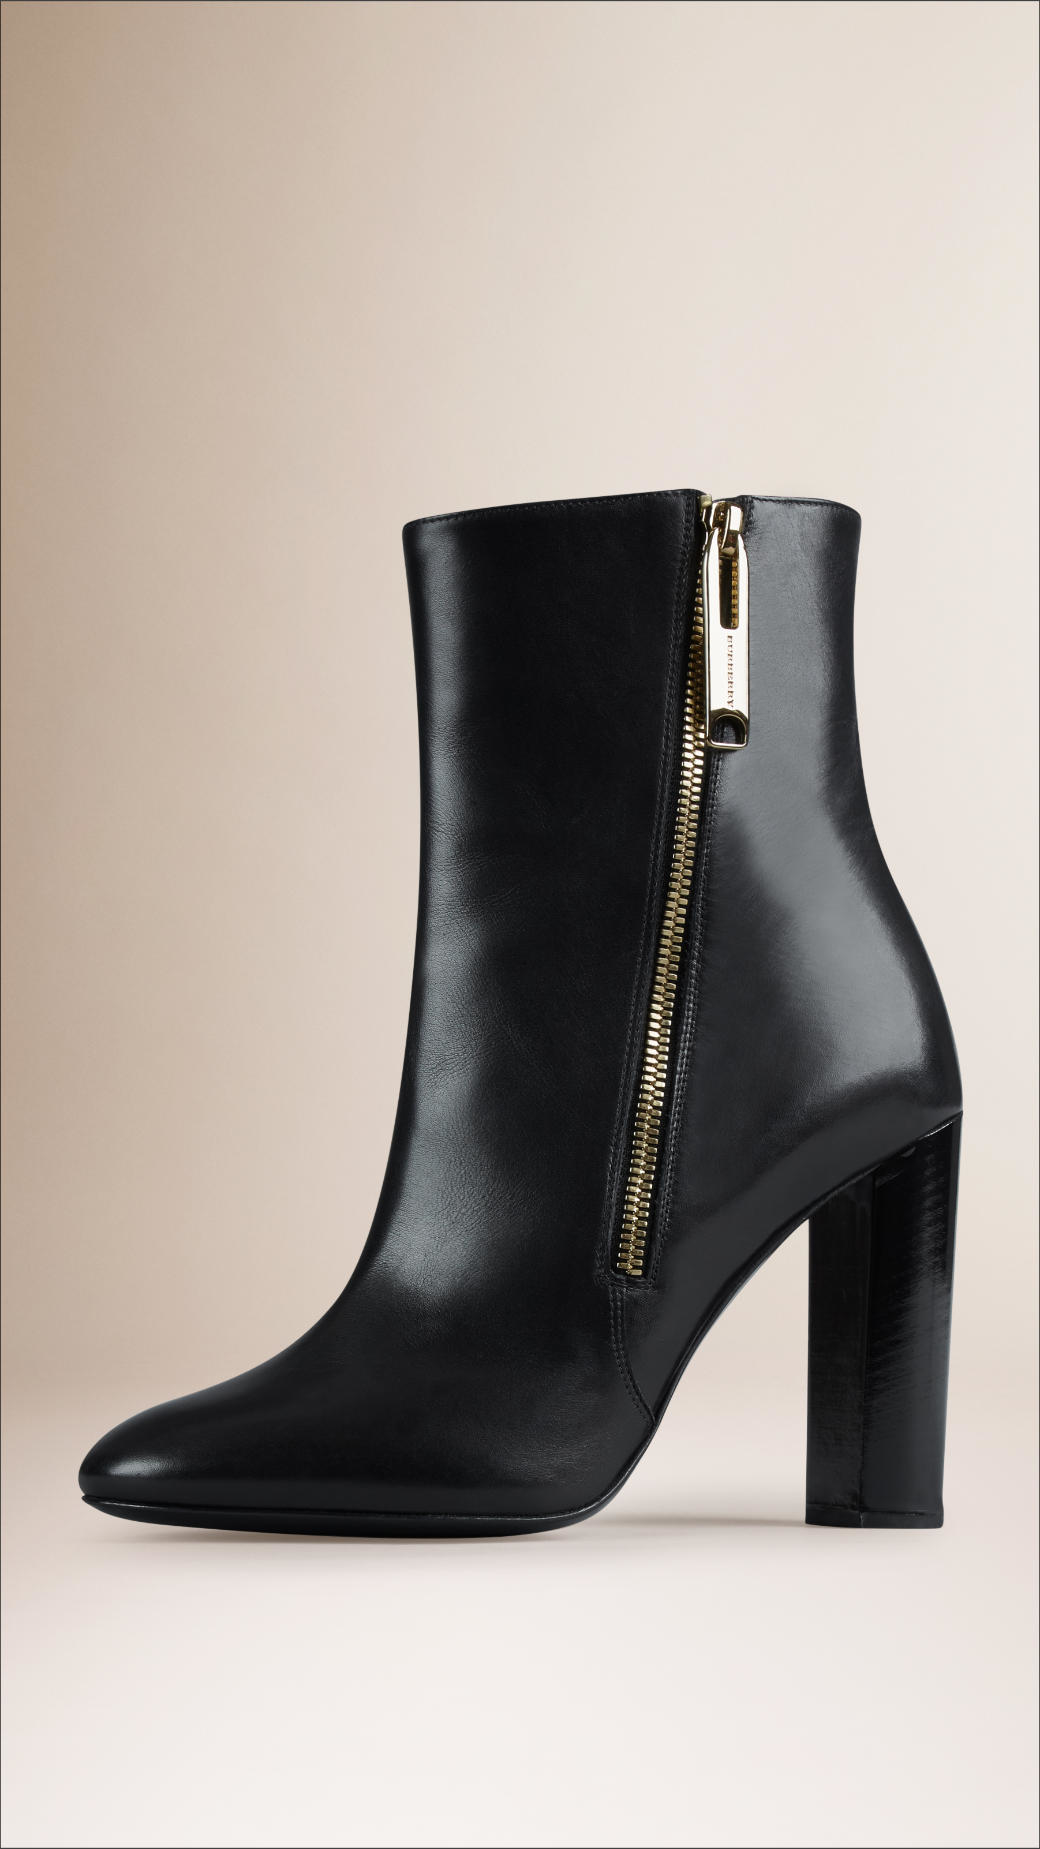 clearance online cheap real Burberry Leather Multistrap Ankle Boots buy cheap shop for discount codes shopping online clearance very cheap free shipping RtpFtY